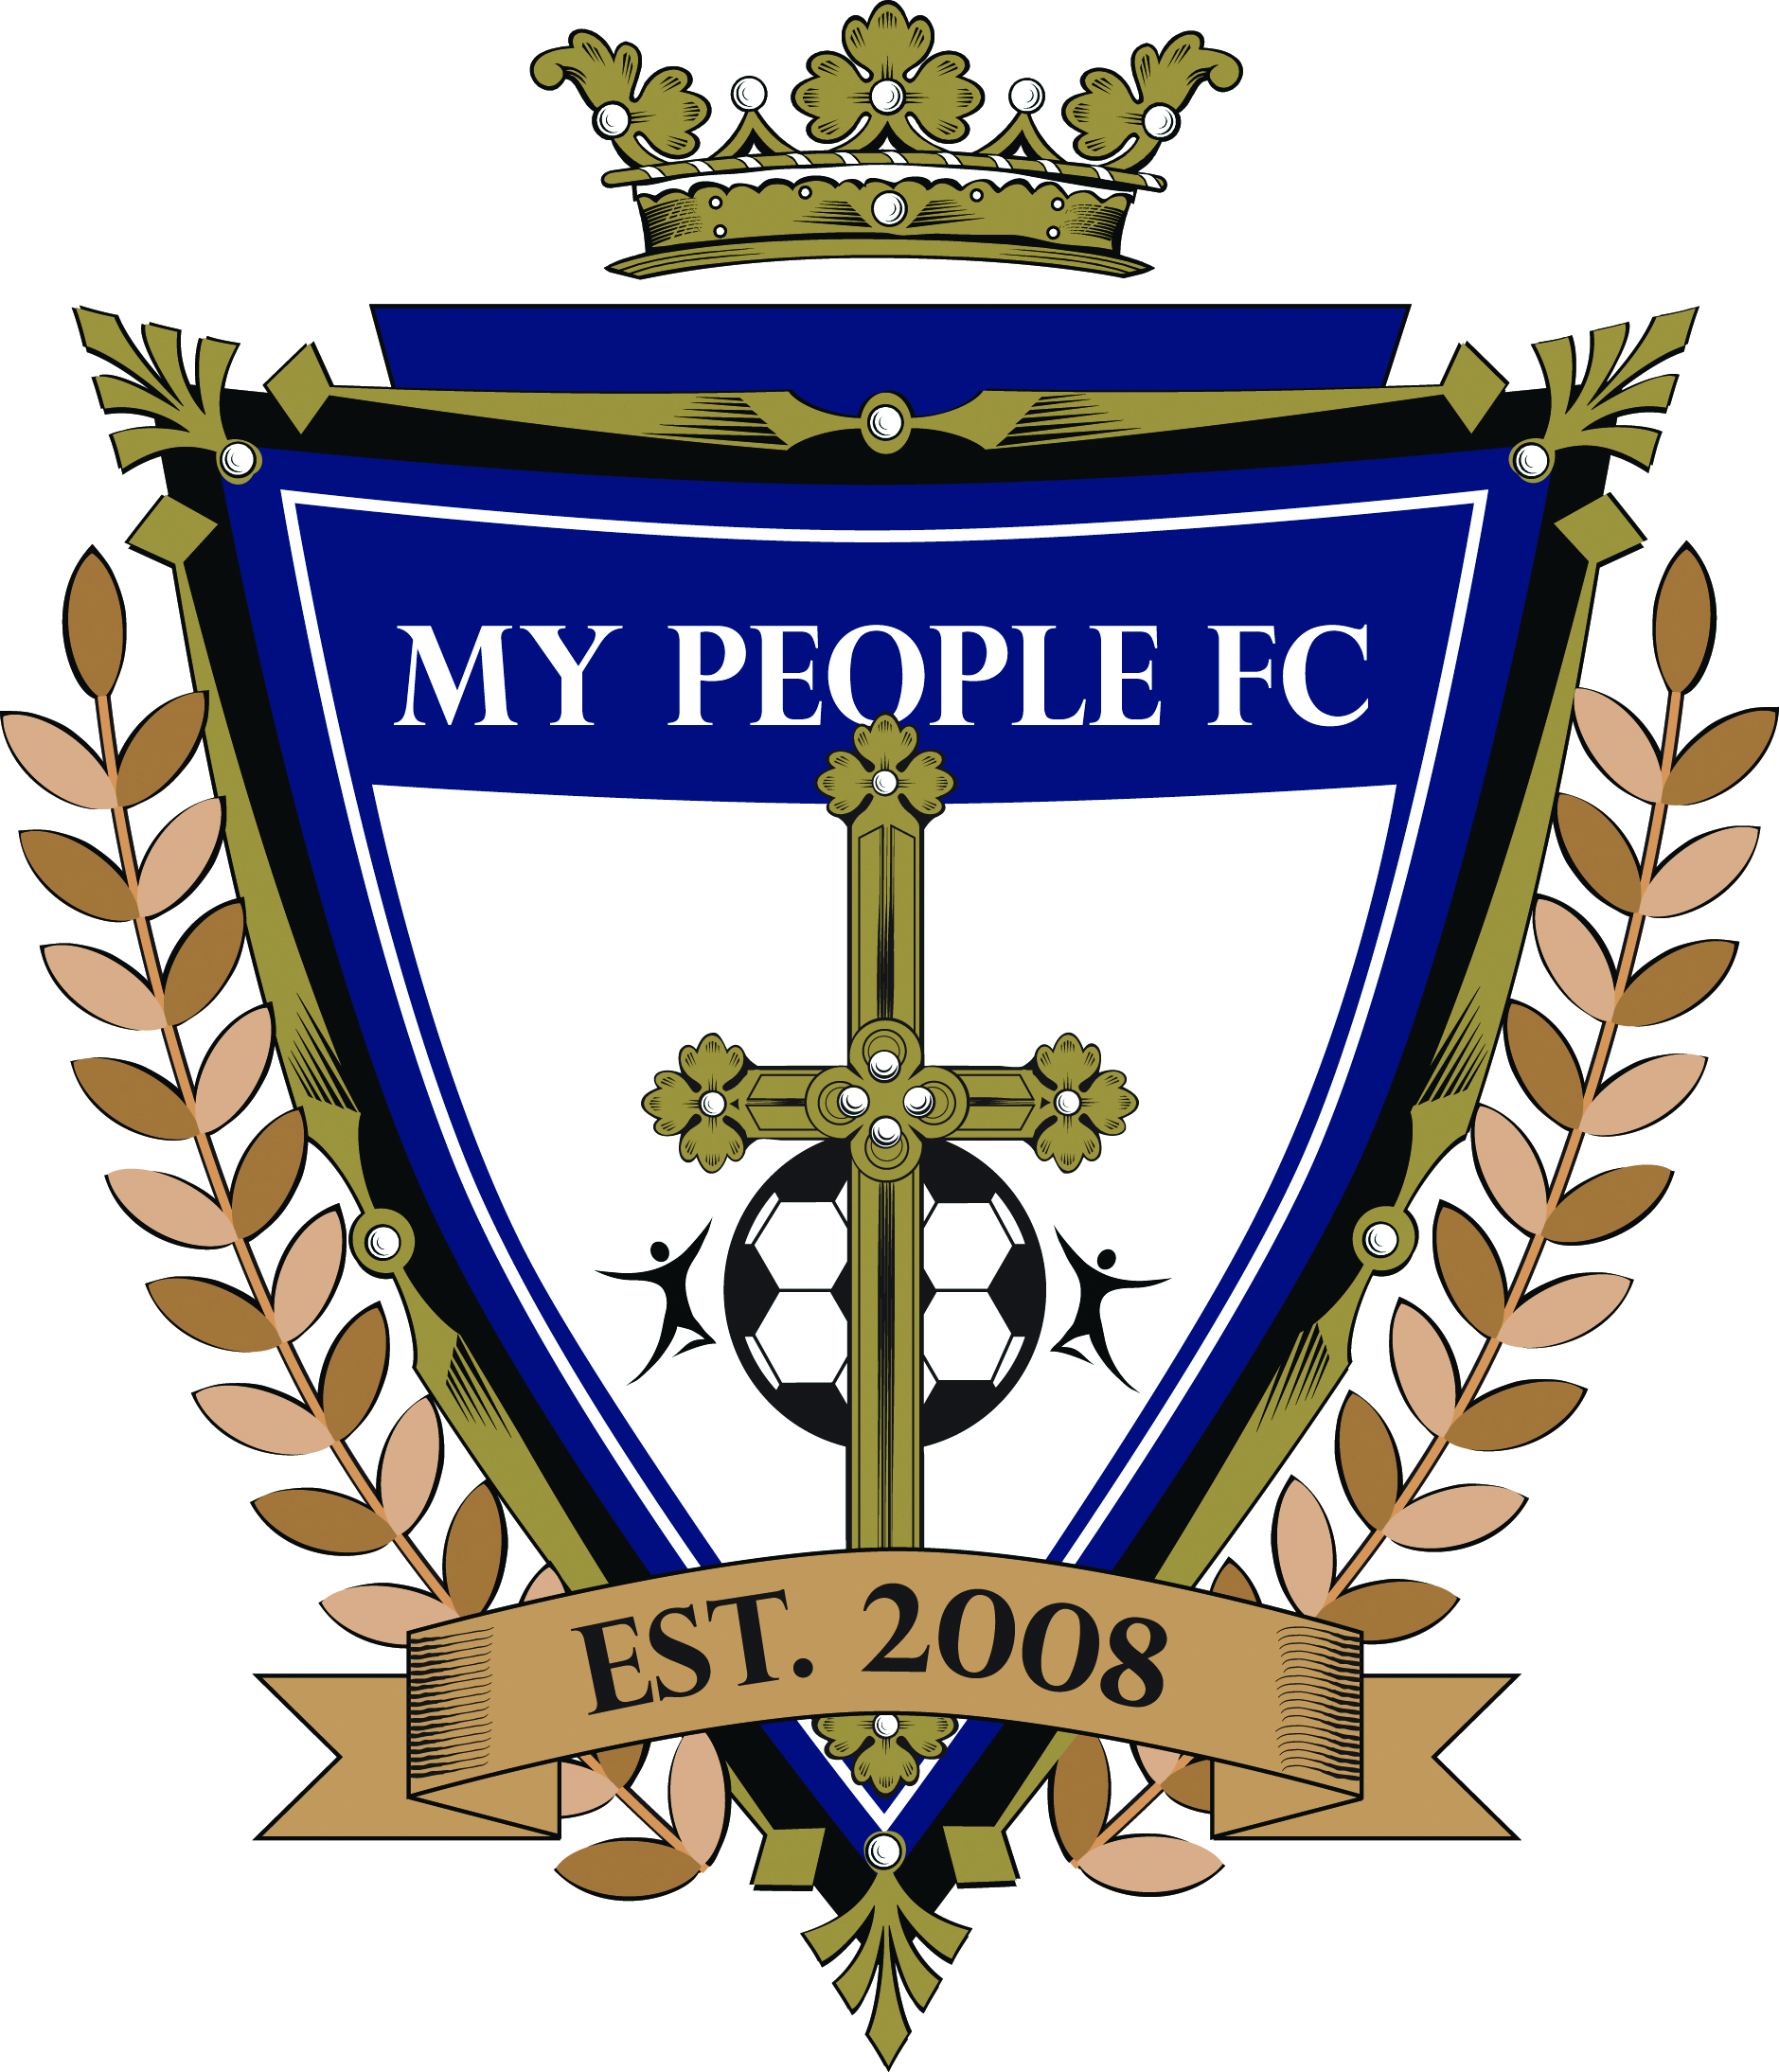 My People FC - spending more on others and less on yourselves